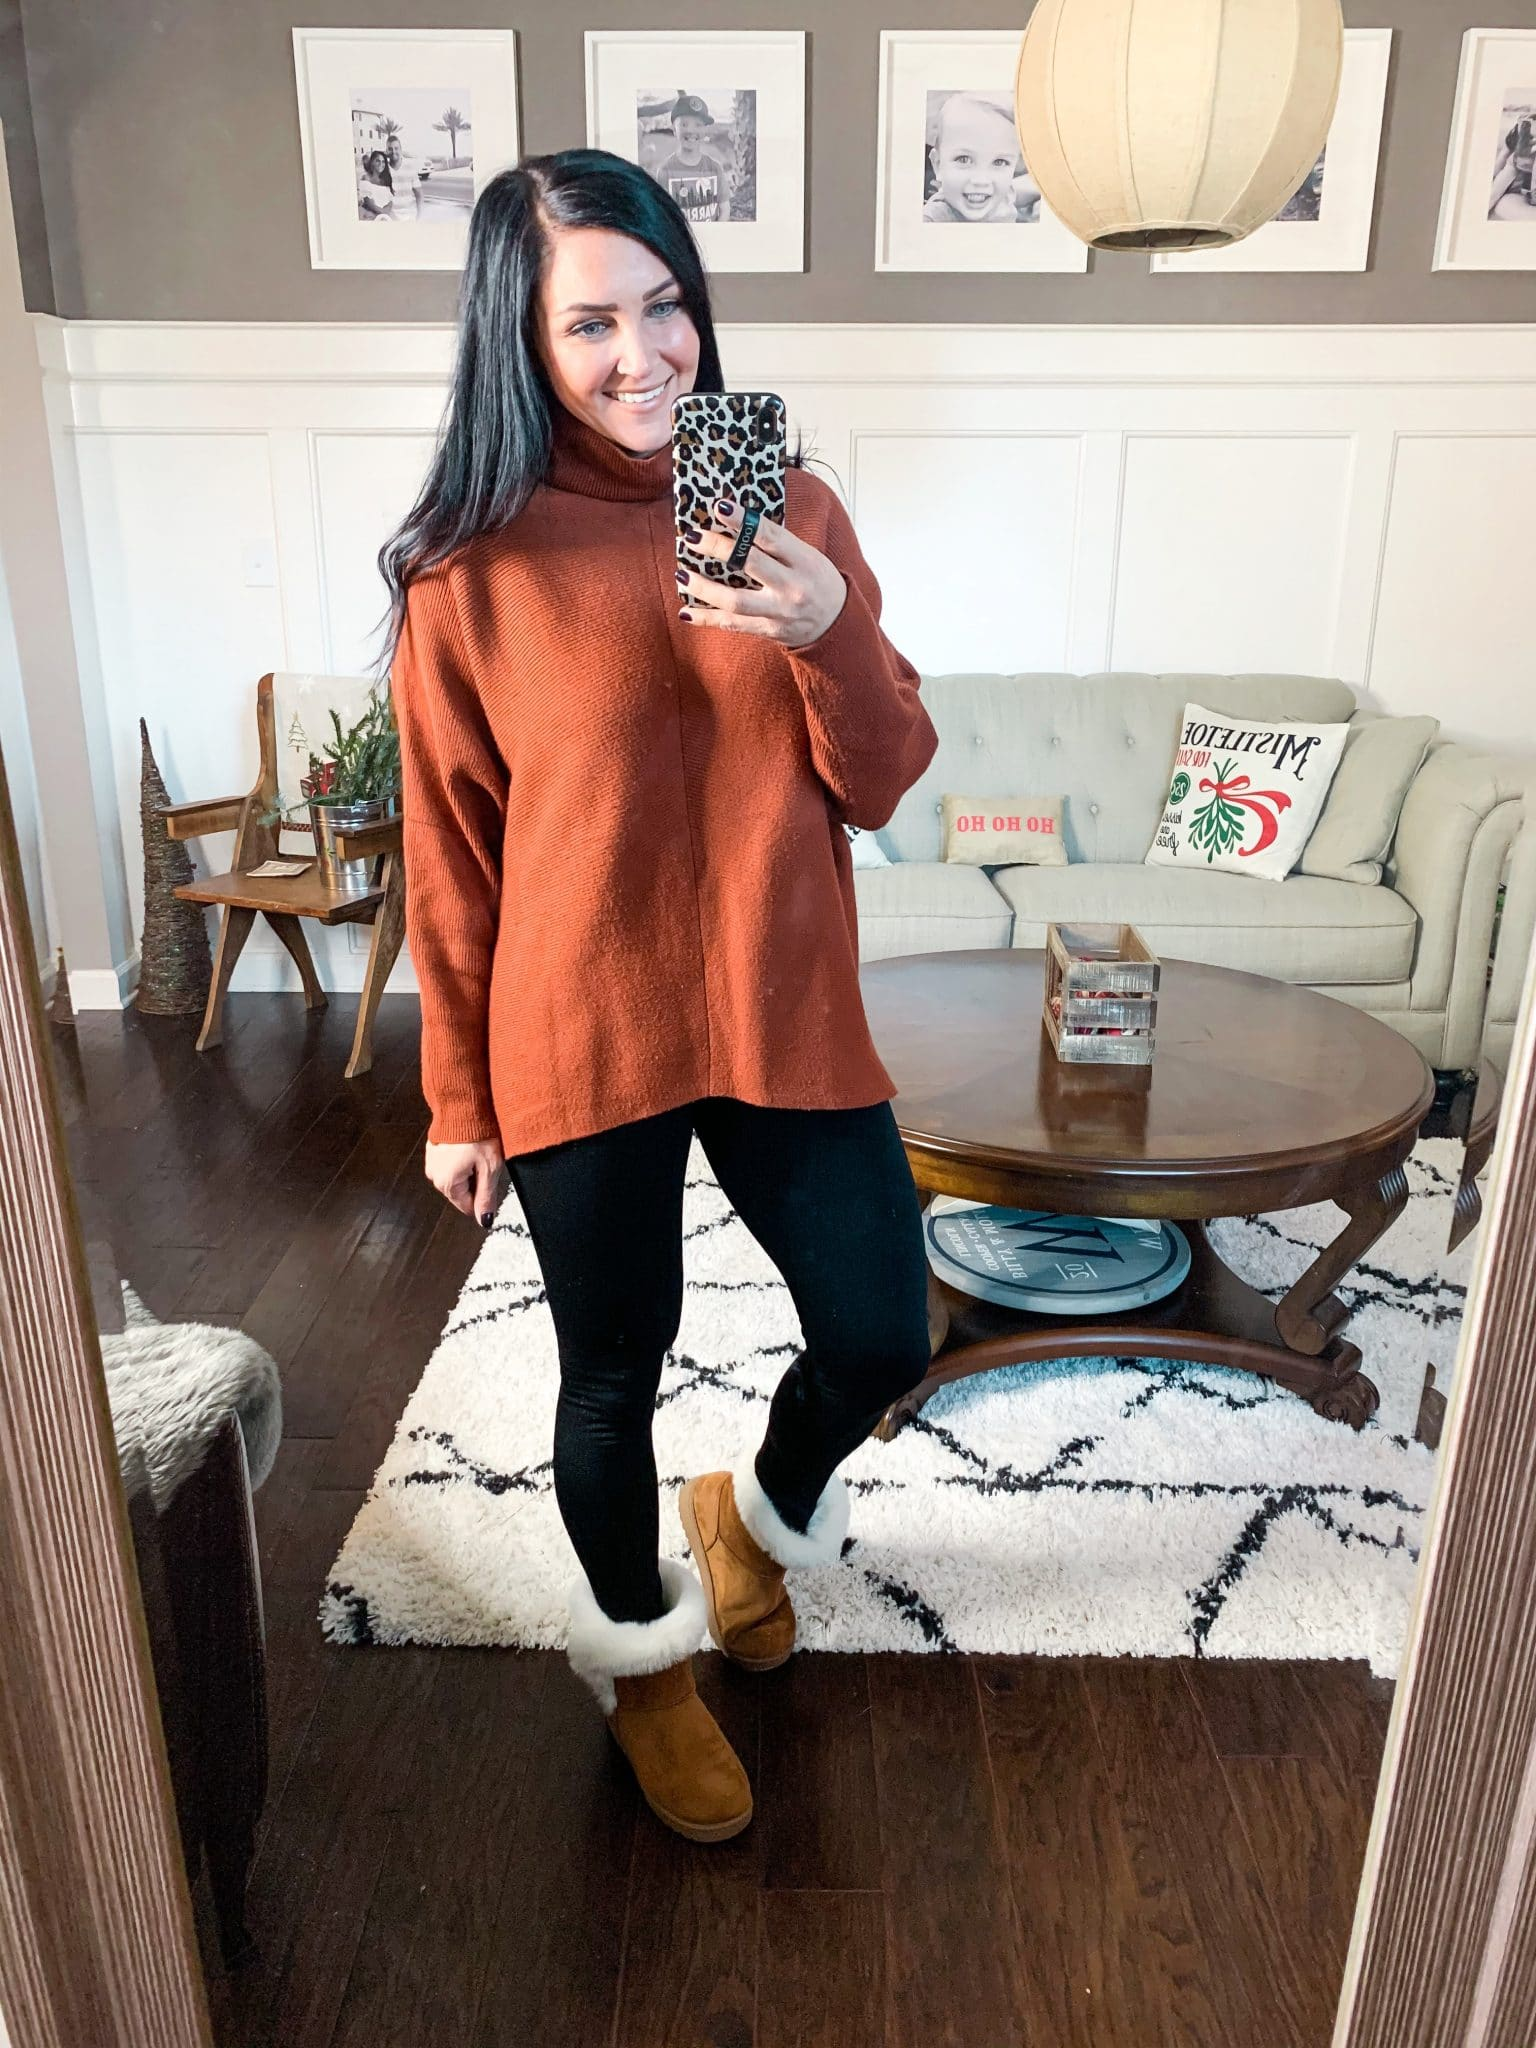 Best Amazon Sweater, Batwing turtleneck sweater, Amazon Finds, Amazon Winter Fashion, Stilettos and Diapers